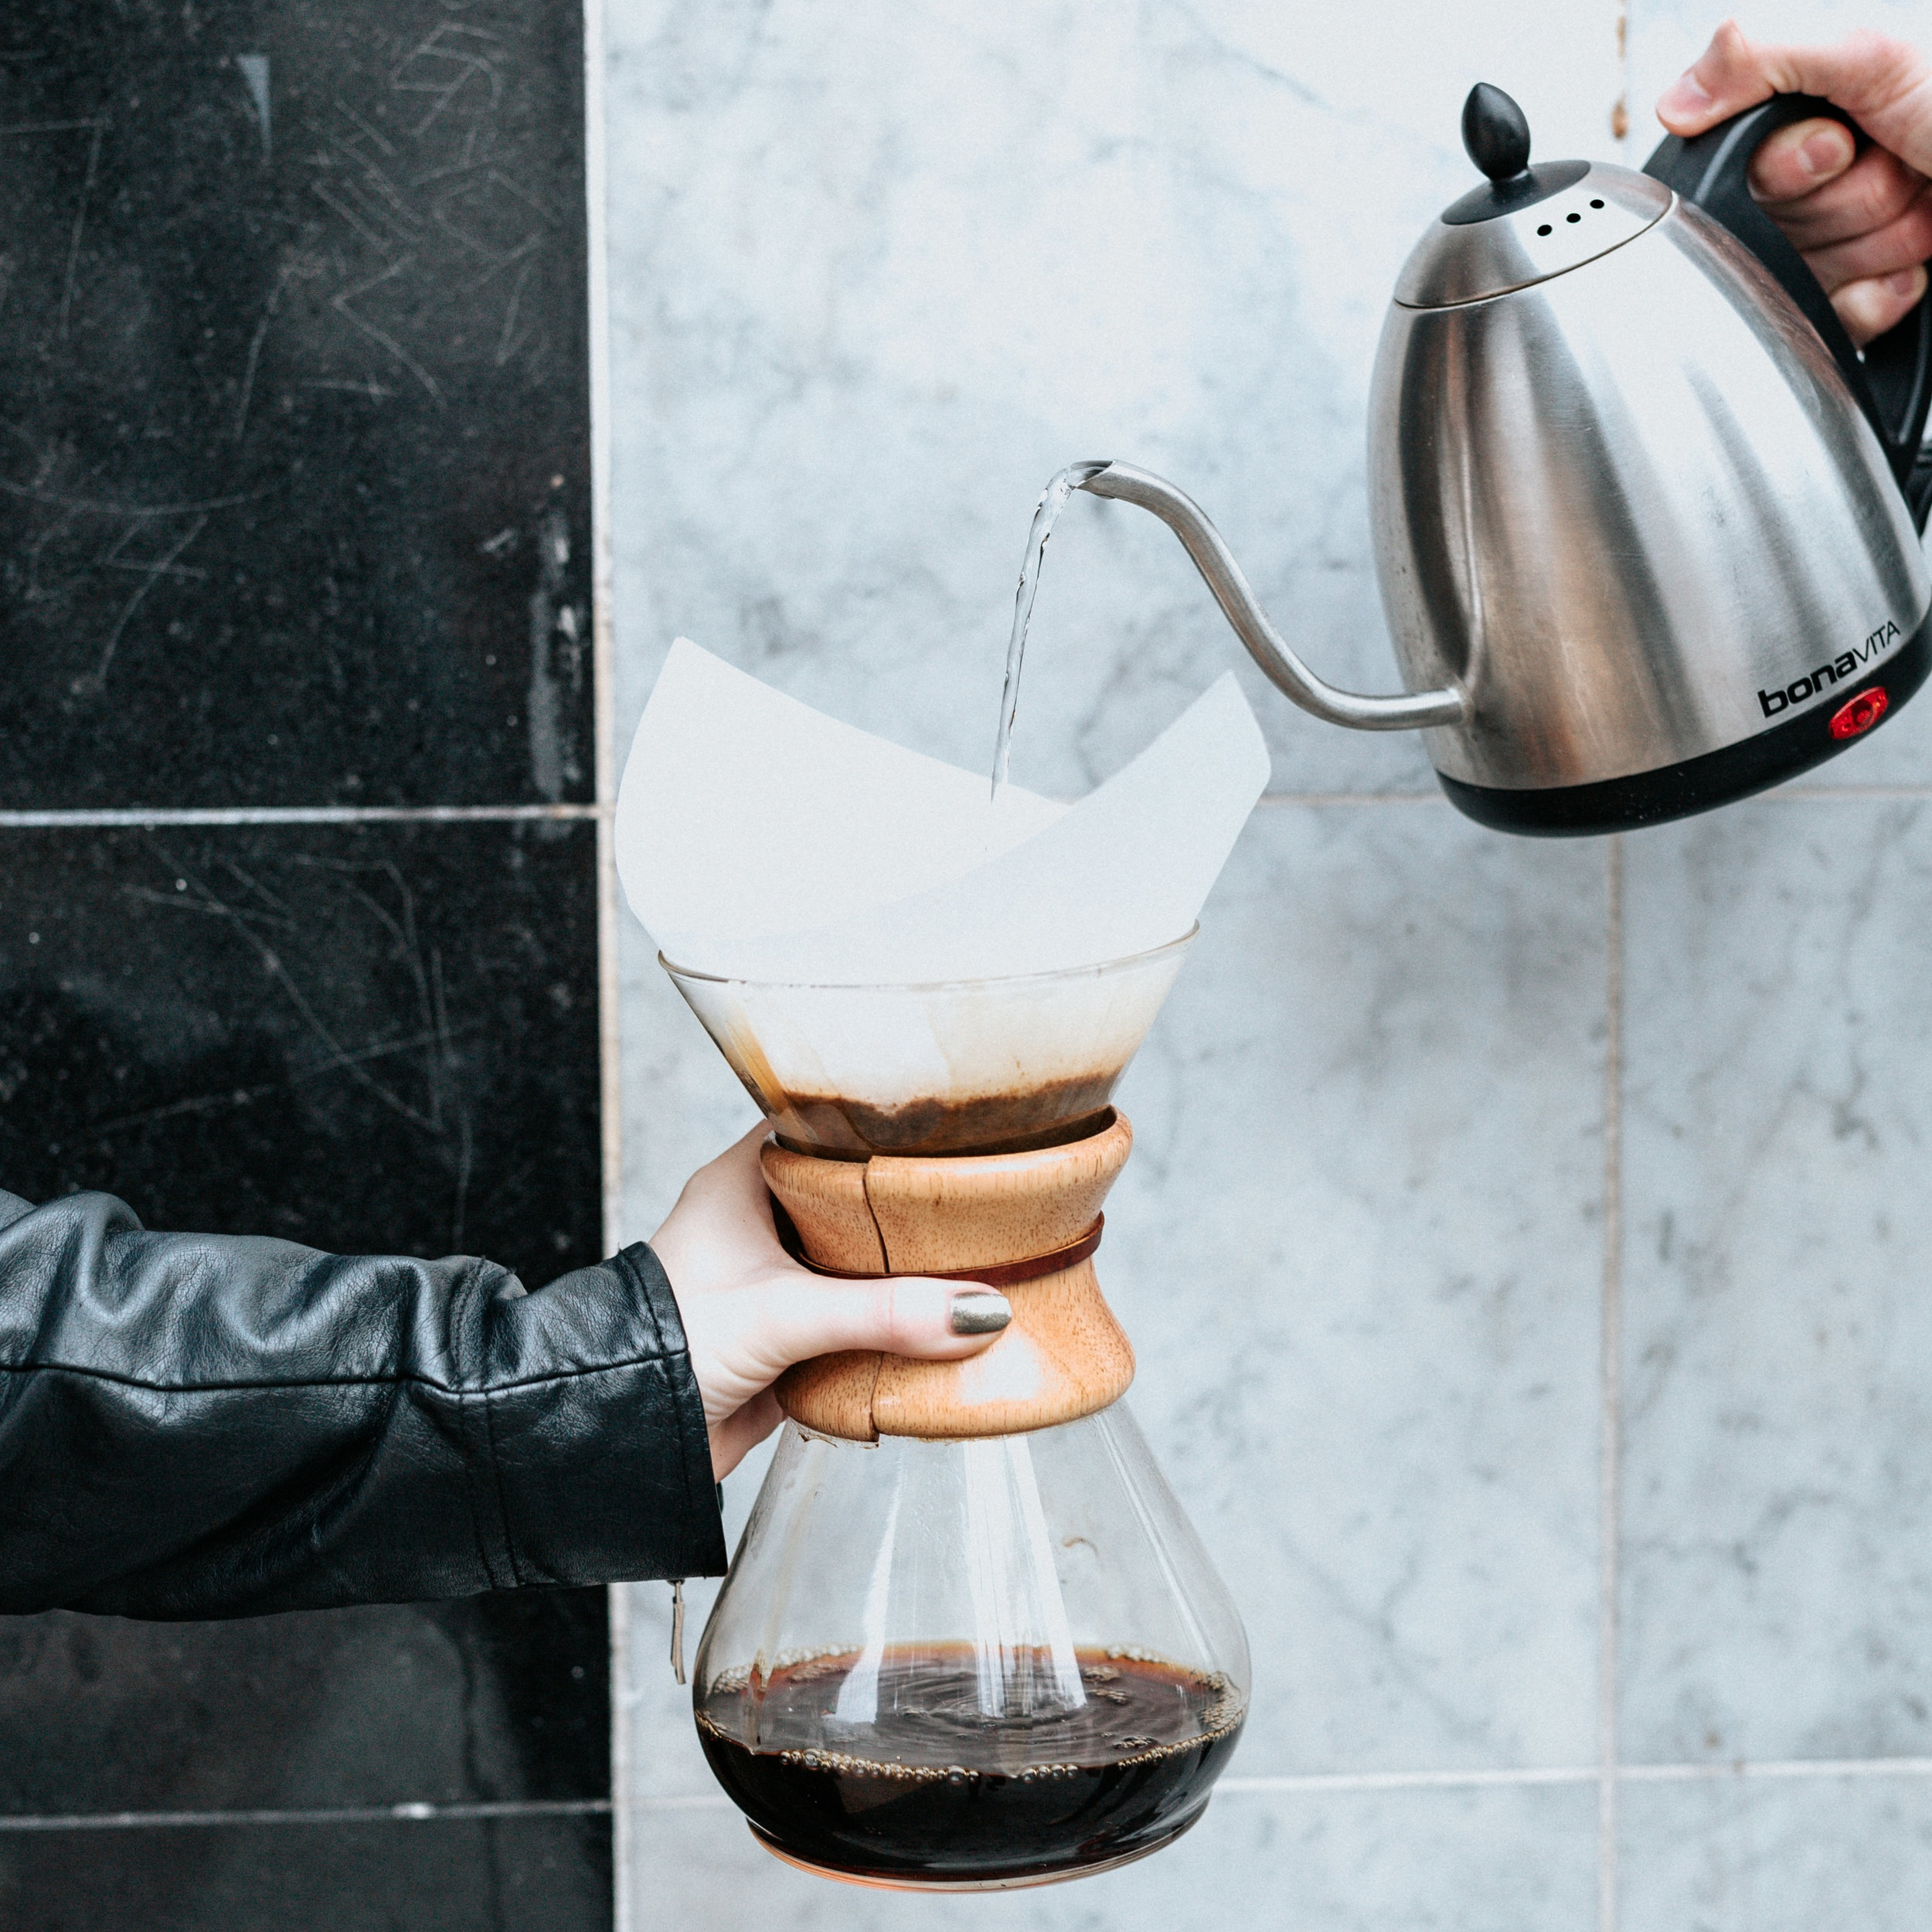 Brewing+innovation%3F+Better+start+with+a+great+cup+of+coffee.jpg